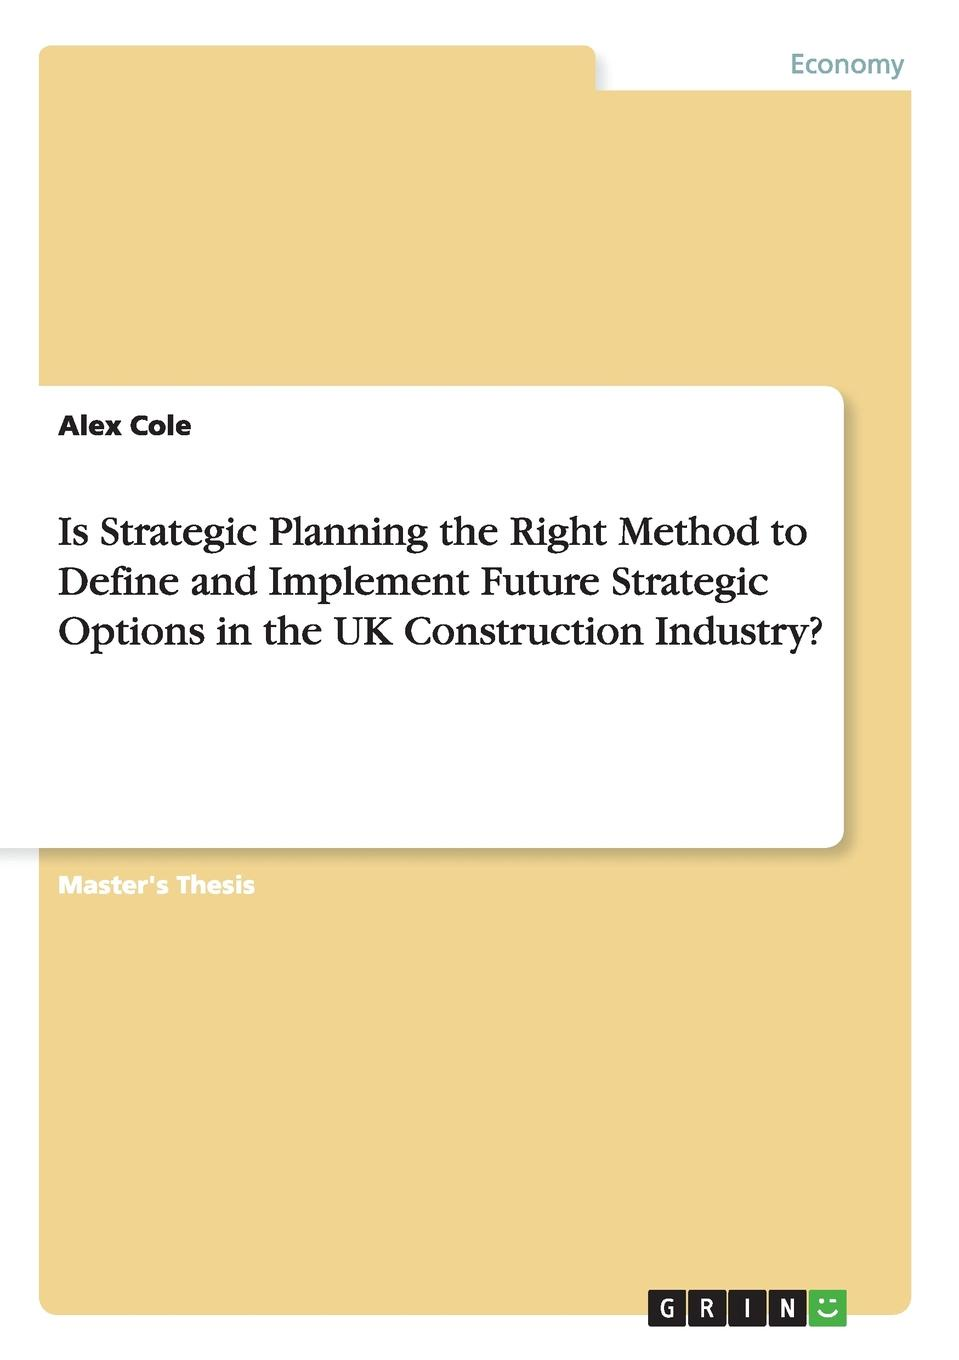 лучшая цена Alex Cole Is Strategic Planning the Right Method to Define and Implement Future Strategic Options in the UK Construction Industry.